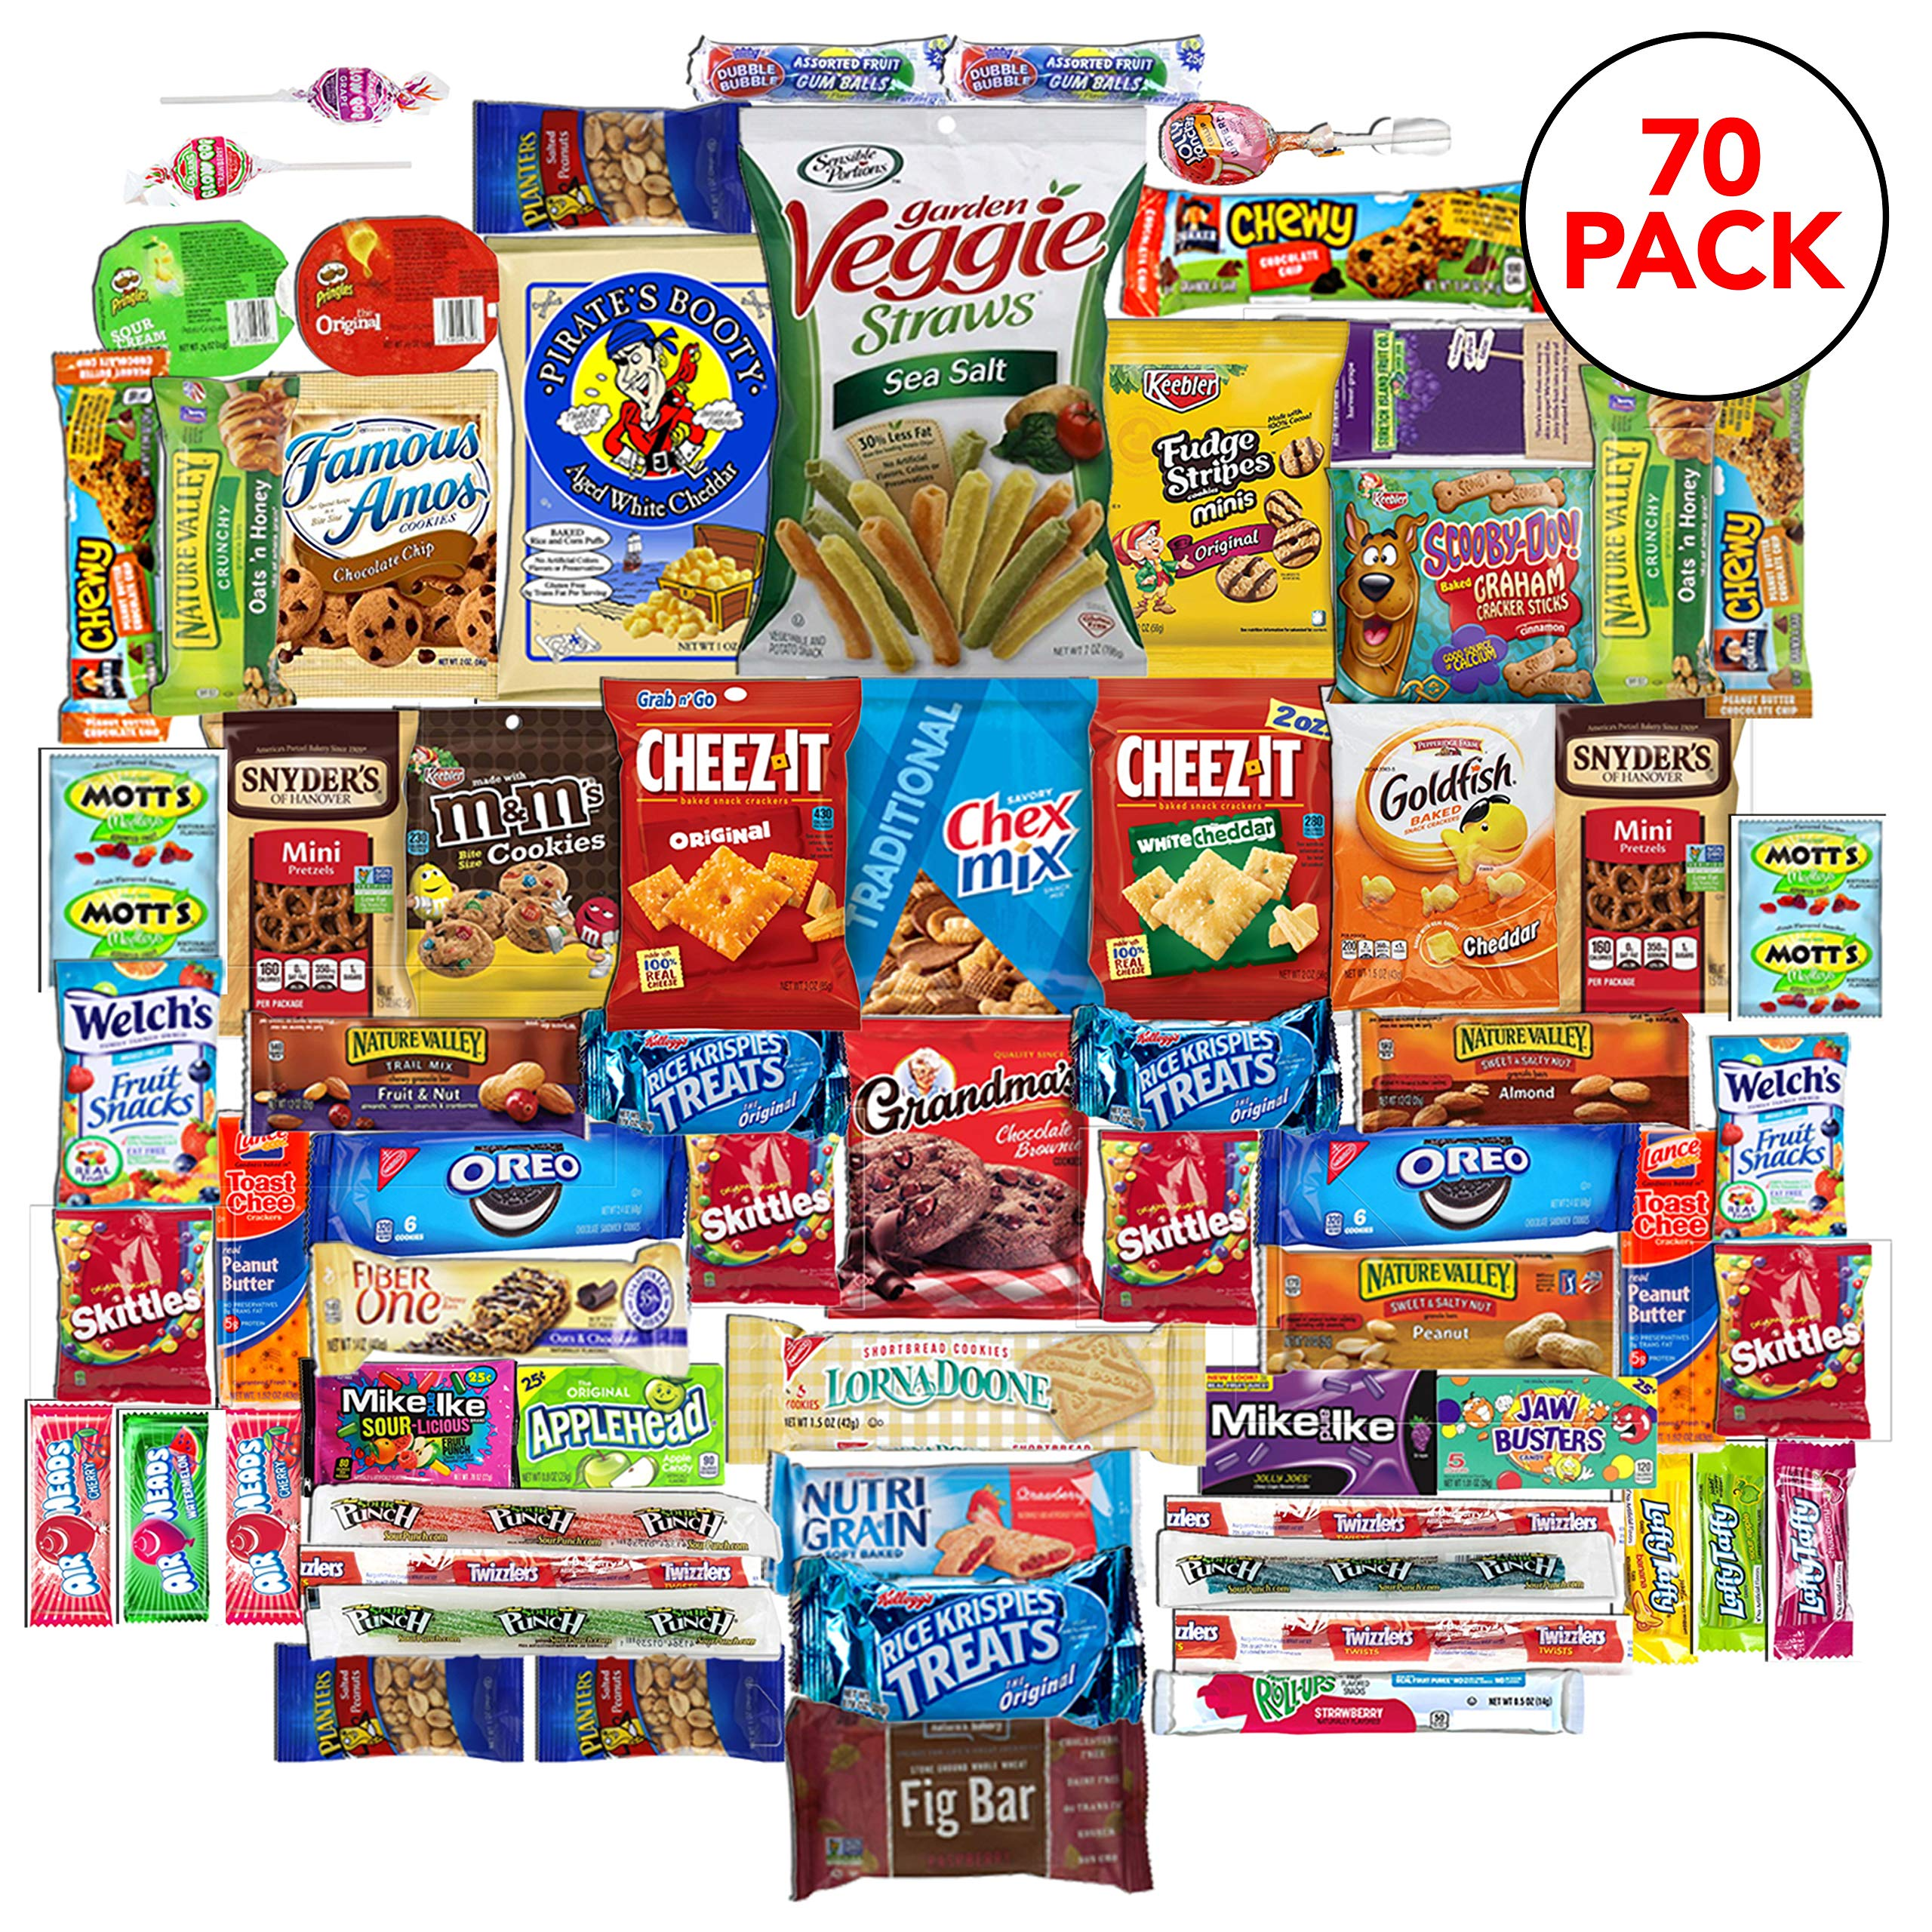 The Snack Bar - Snack Care Package (70 count) - Variety Assortment with American Candy, Fruit Snacks, Granola Bars, Chips plus, Gift Snack Box for Lunches, Office, College Students (70)